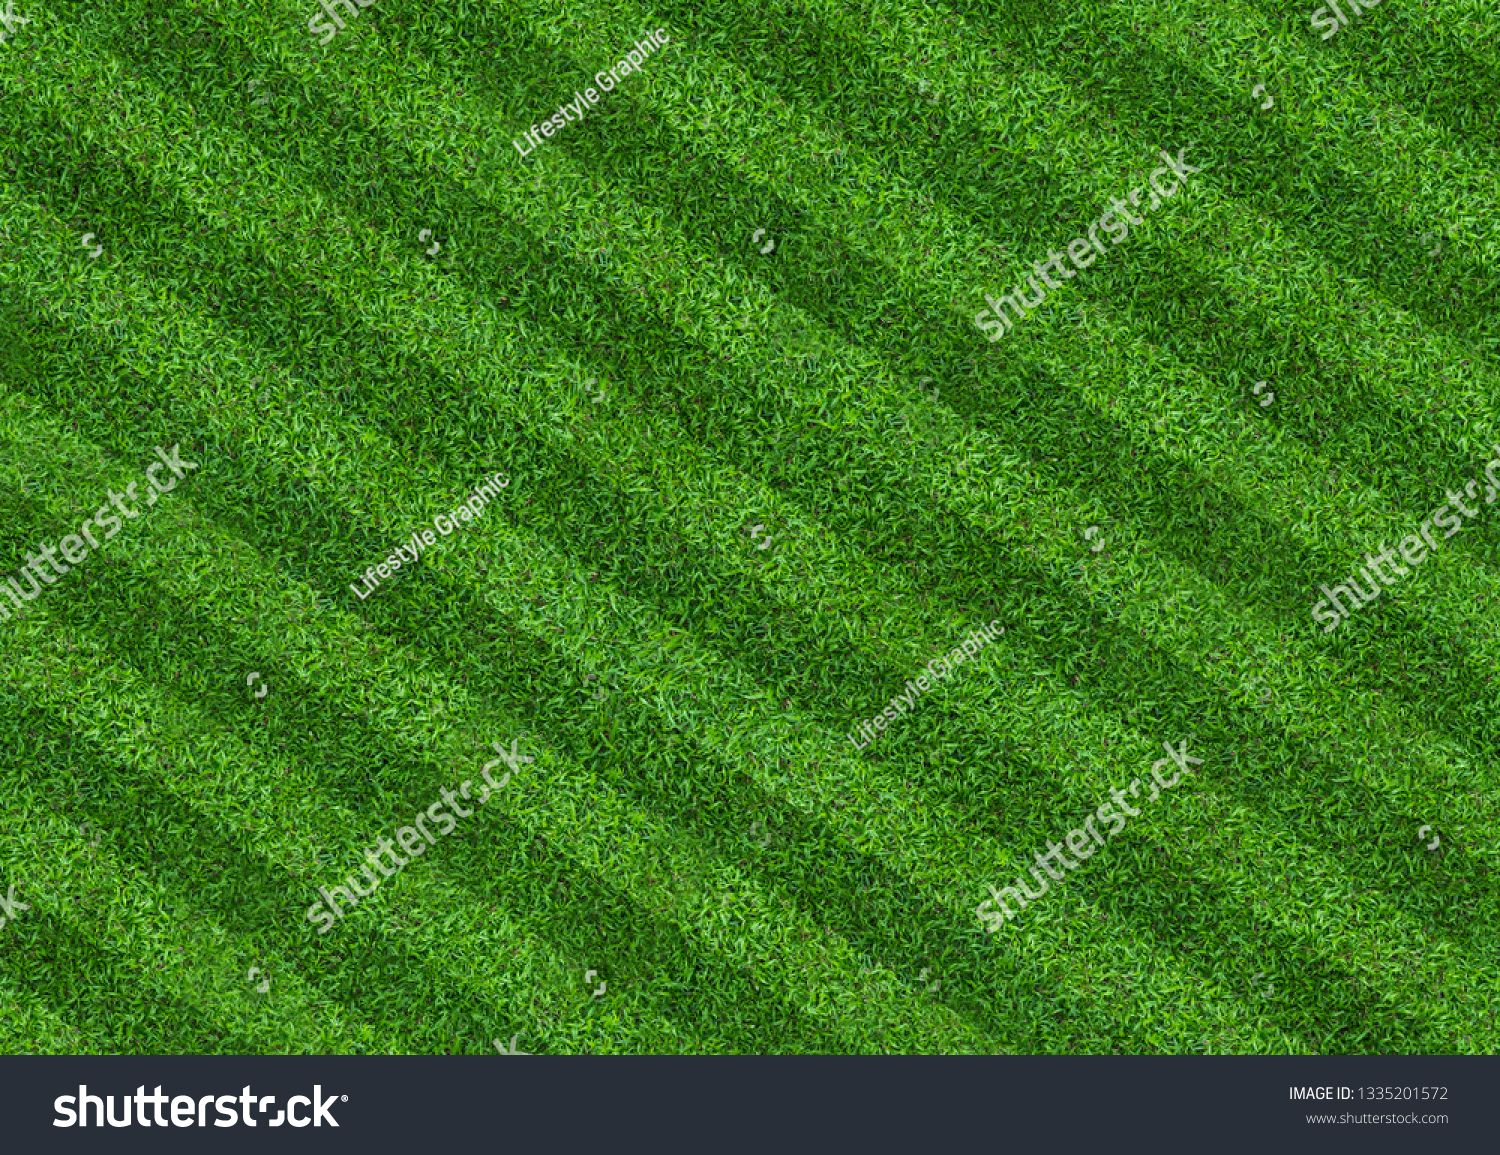 Green Grass Field Background For Soccer And Football Sports Green Lawn Pattern And Texture Background Close Up Image Ad Spo Grass Field Field Green Lawn